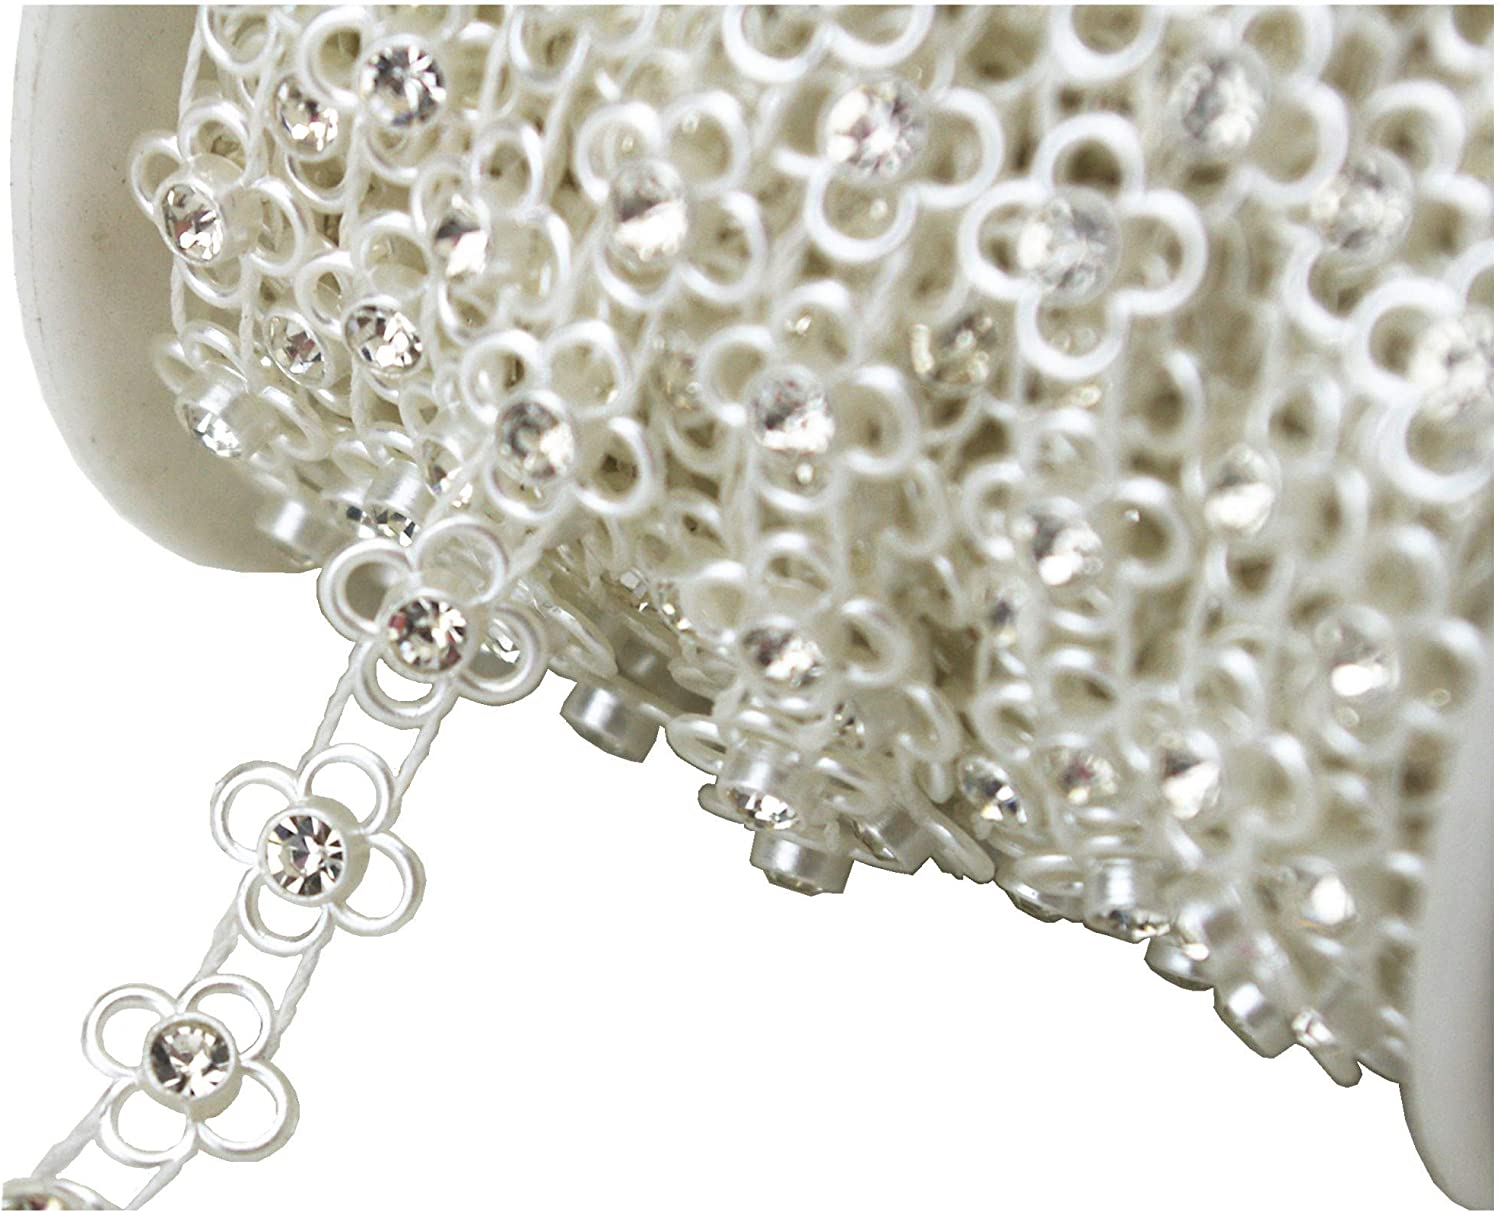 LZ118 AEAOA 8mm Ivory Pearl and Rhinestone Chain Sewing Trims Cake Decoration